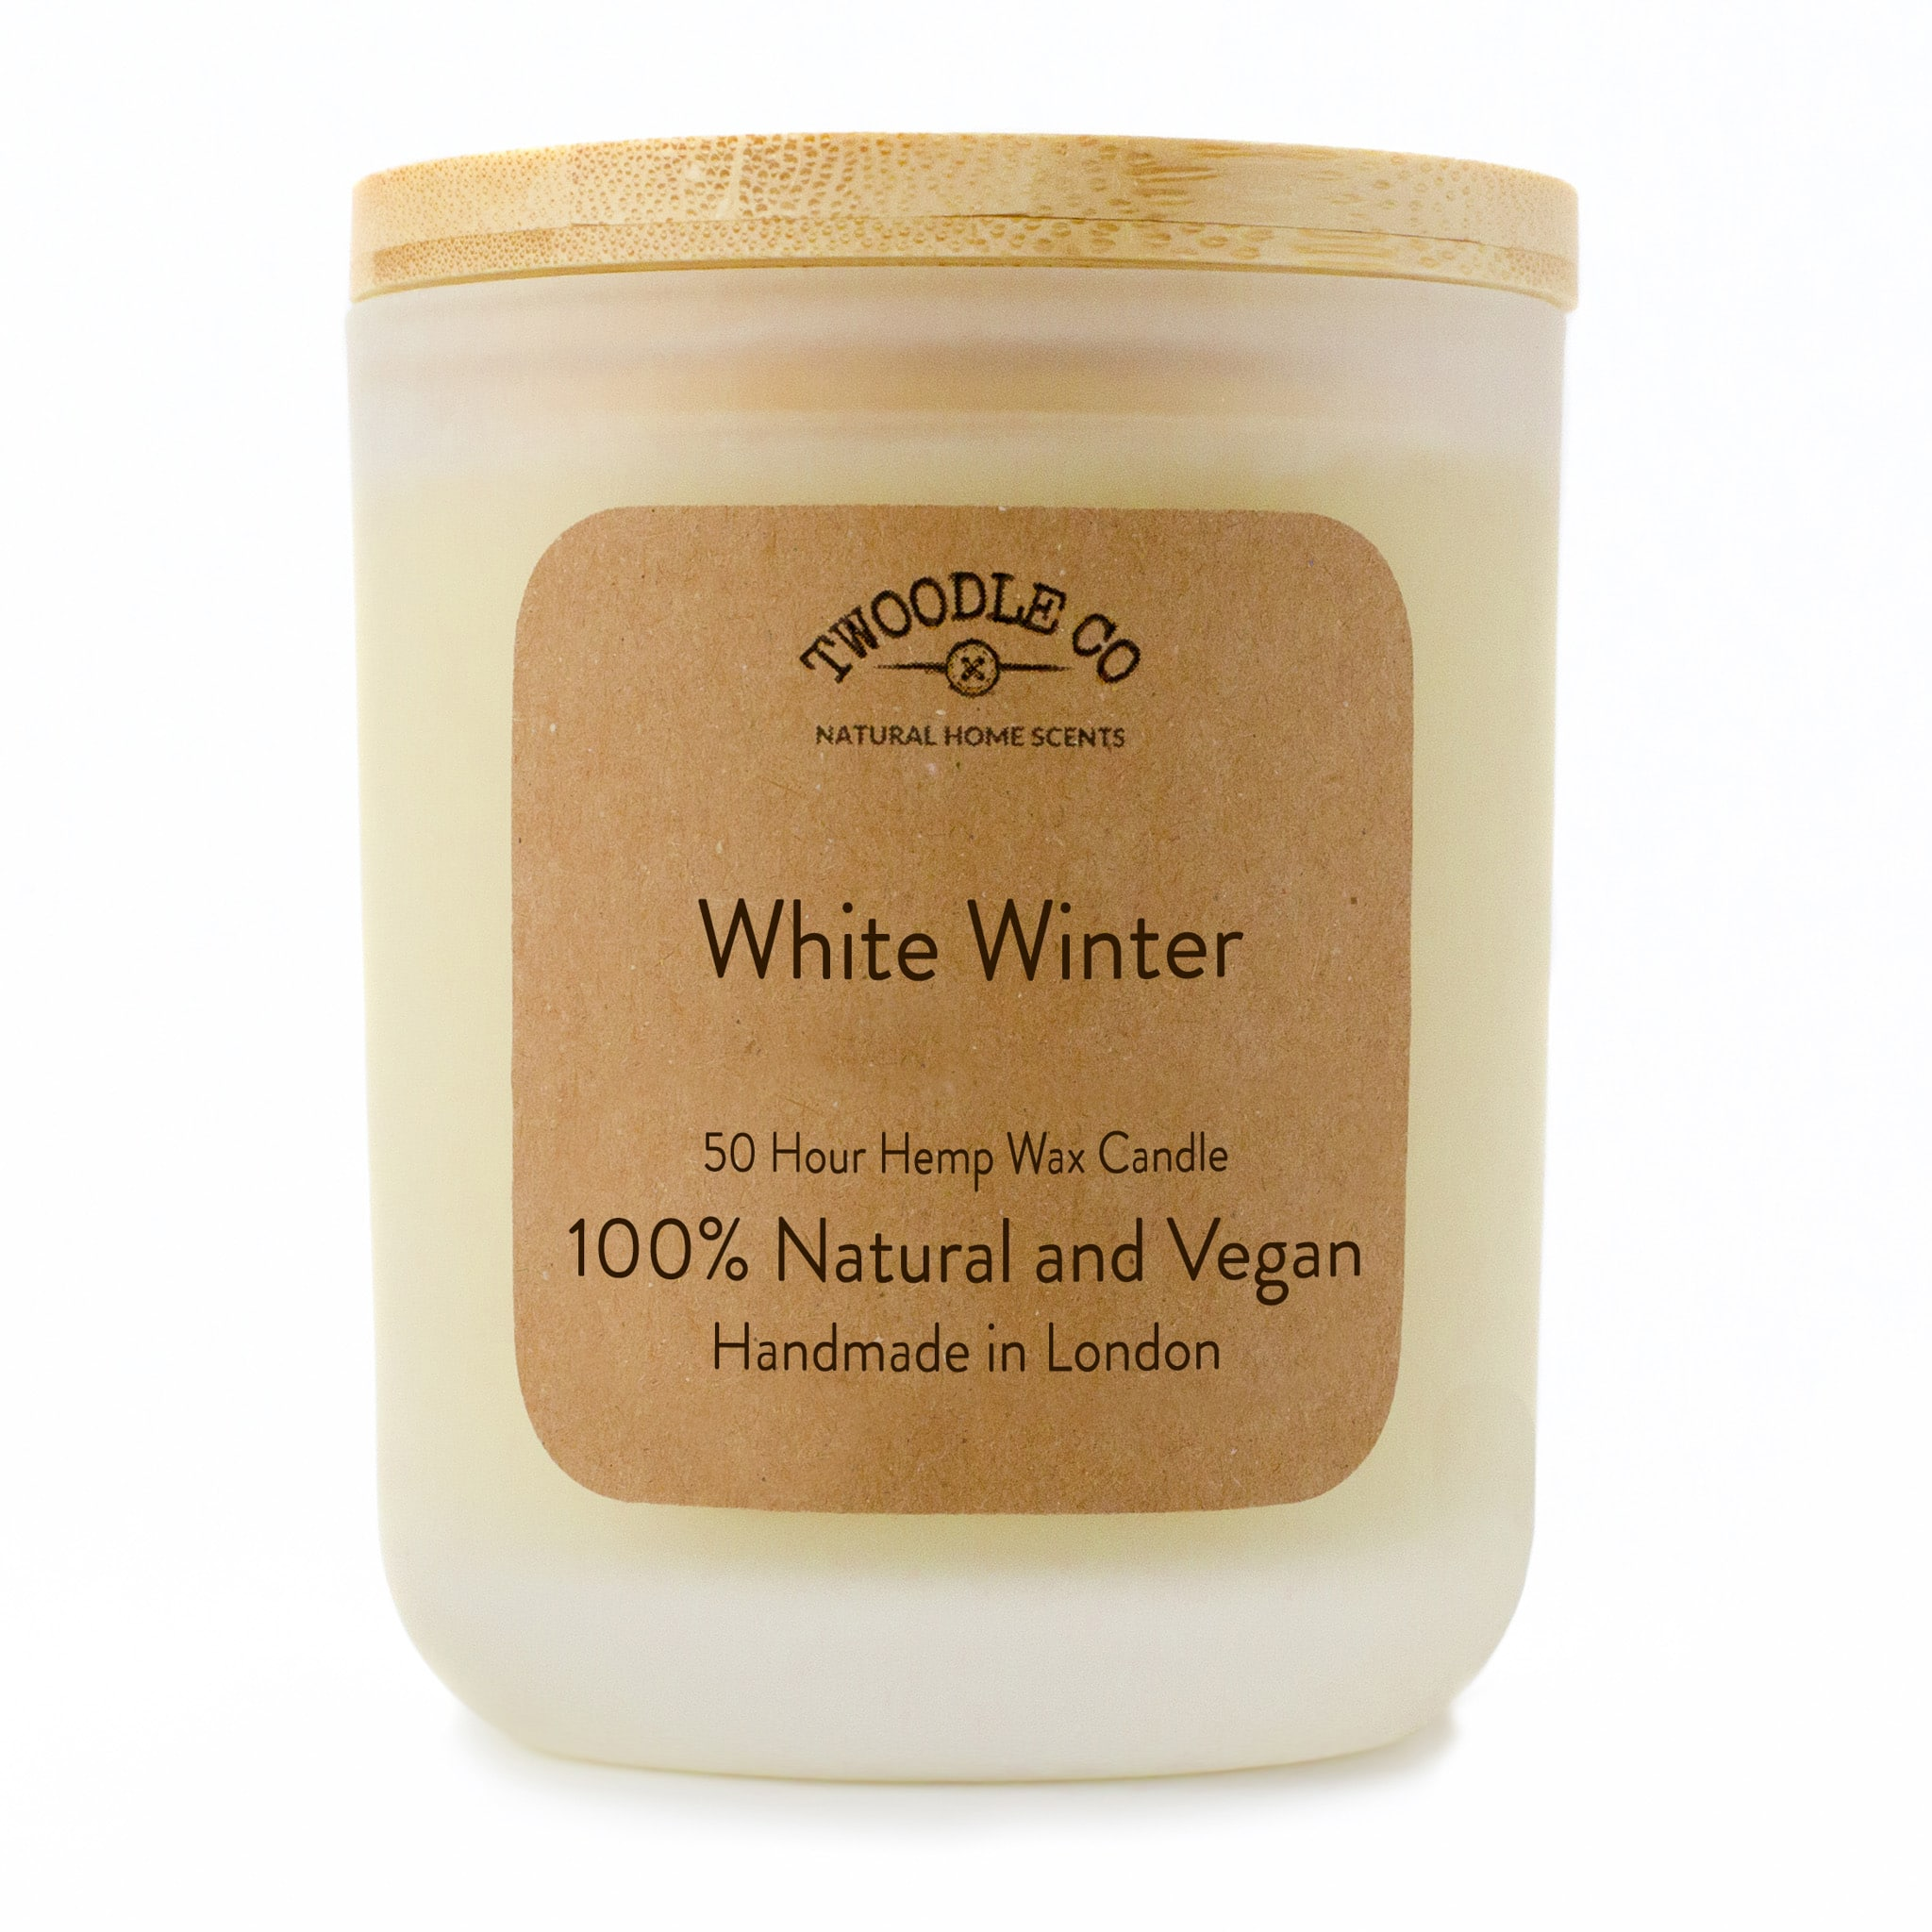 Twoodle Co Medium Scented Candle White Winter